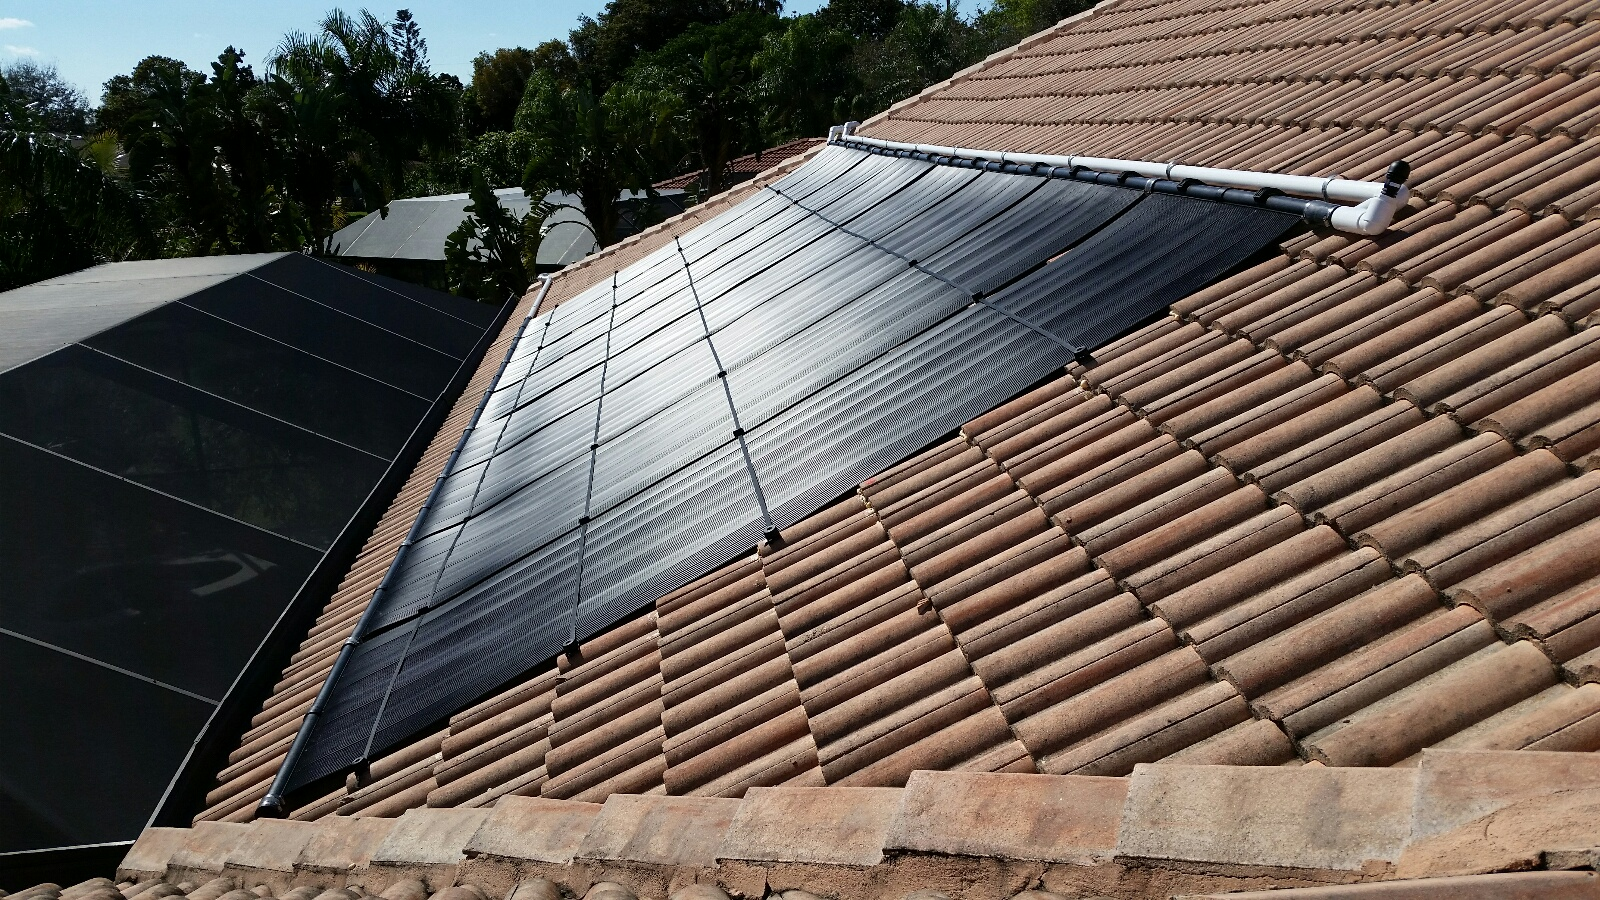 Cape Coral Solar Pool Heater Installation On A Tile Roof